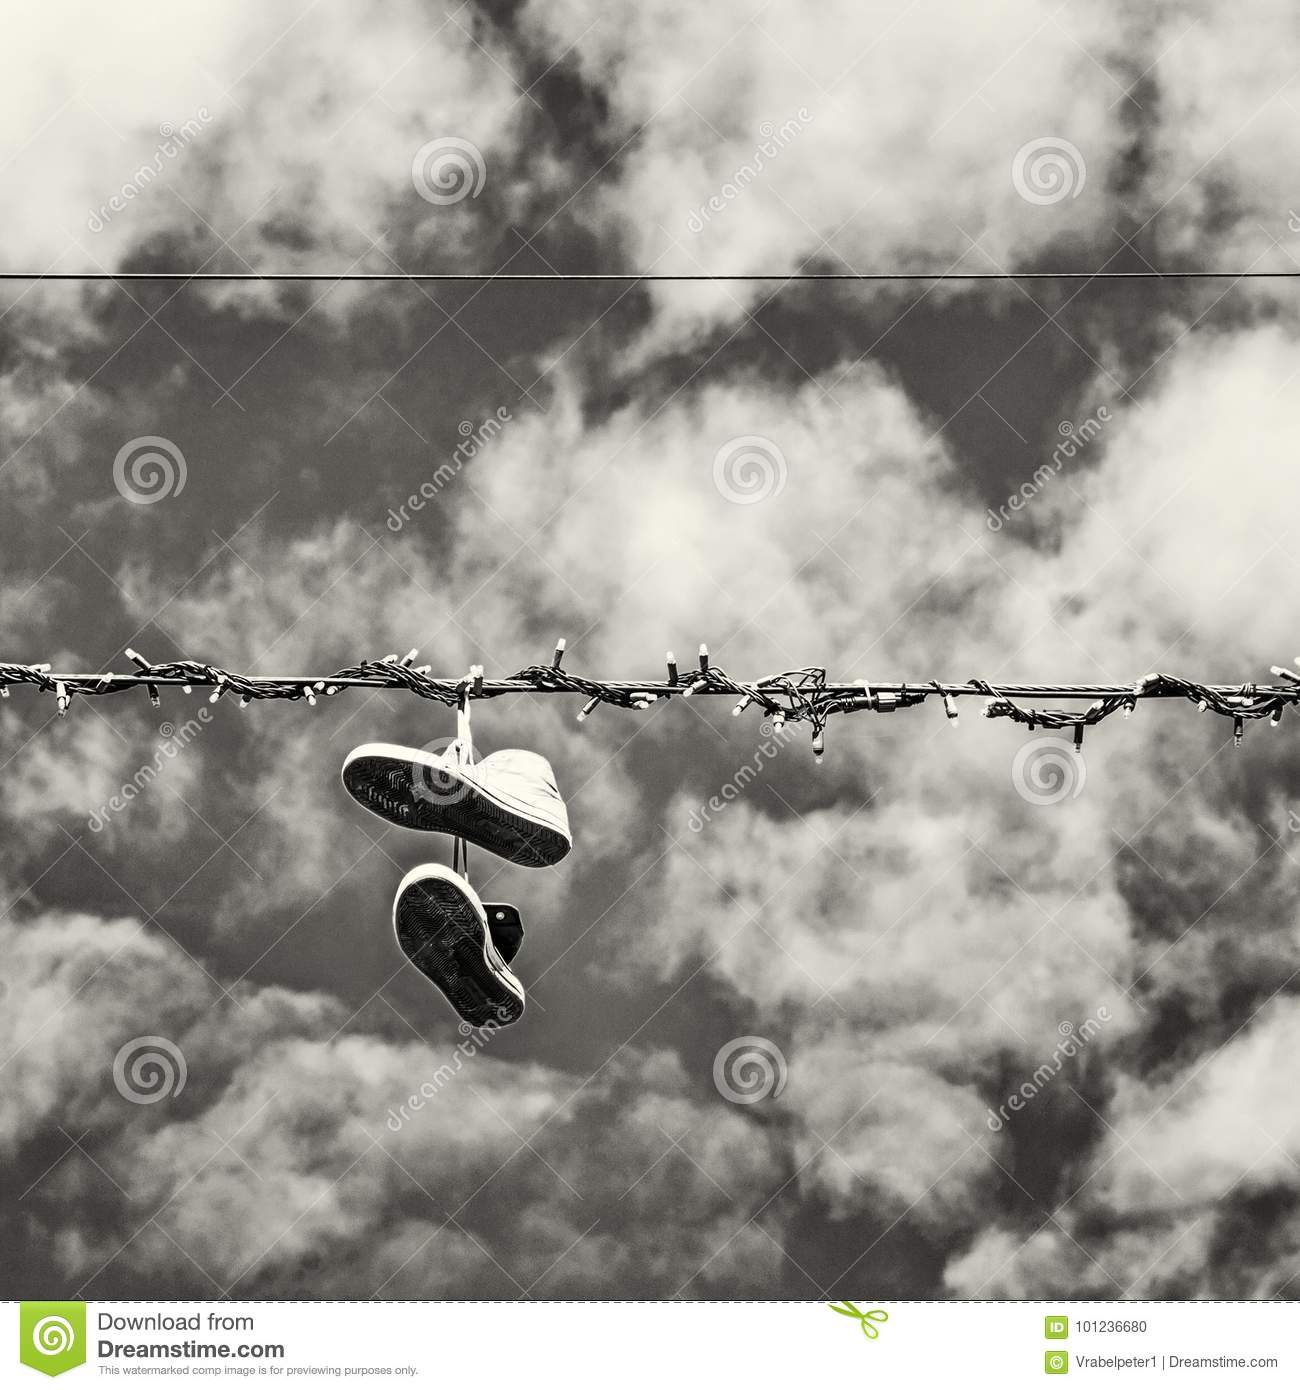 Sneakers hanging on the power line blue sky bad joke black and white photo